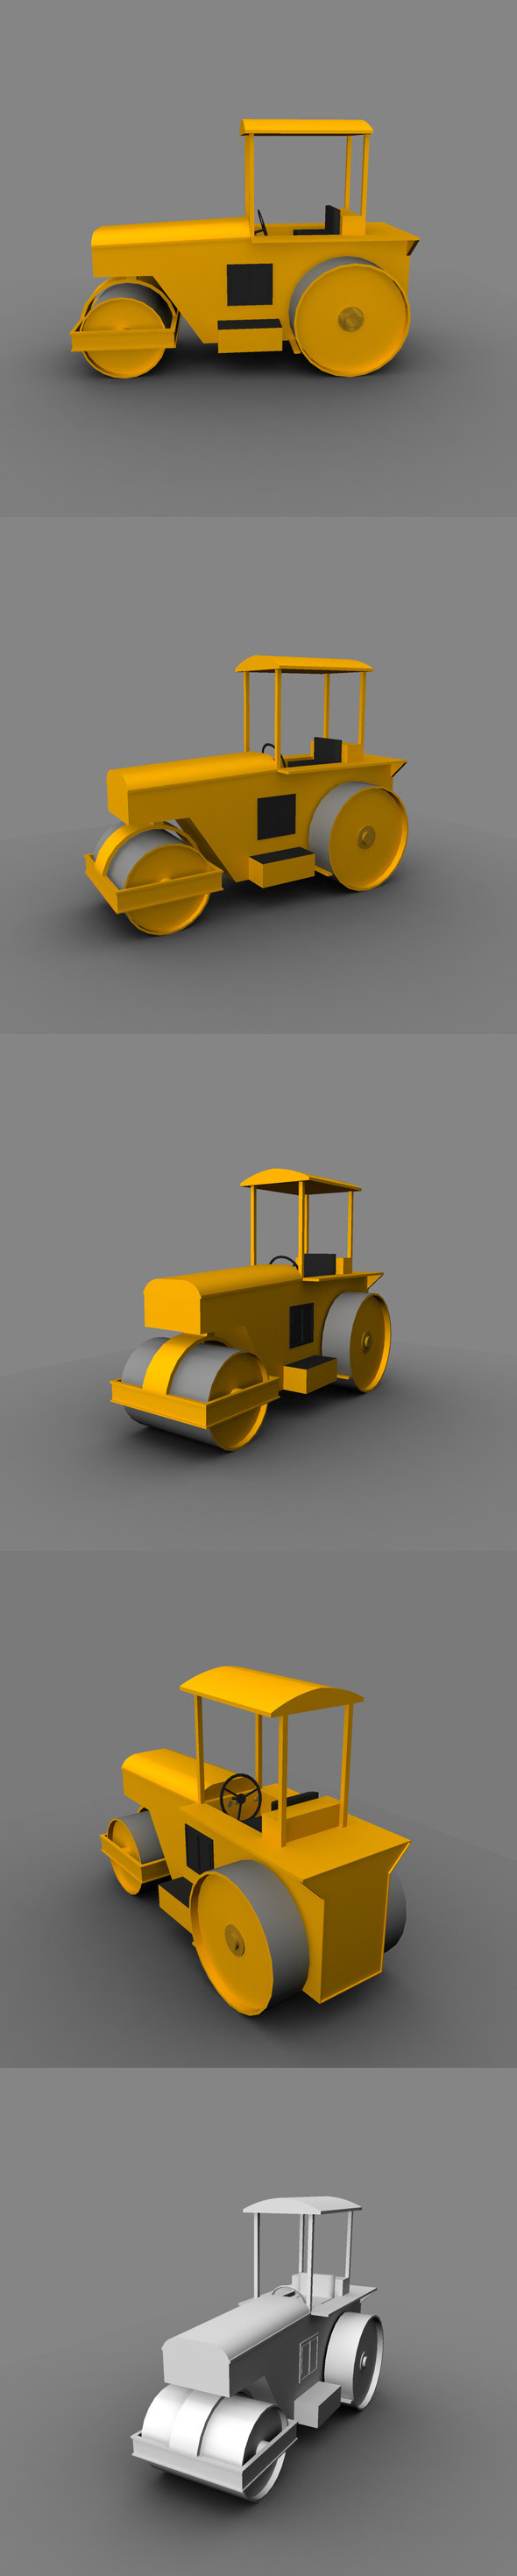 Low Poly Road Roller - 3DOcean Item for Sale